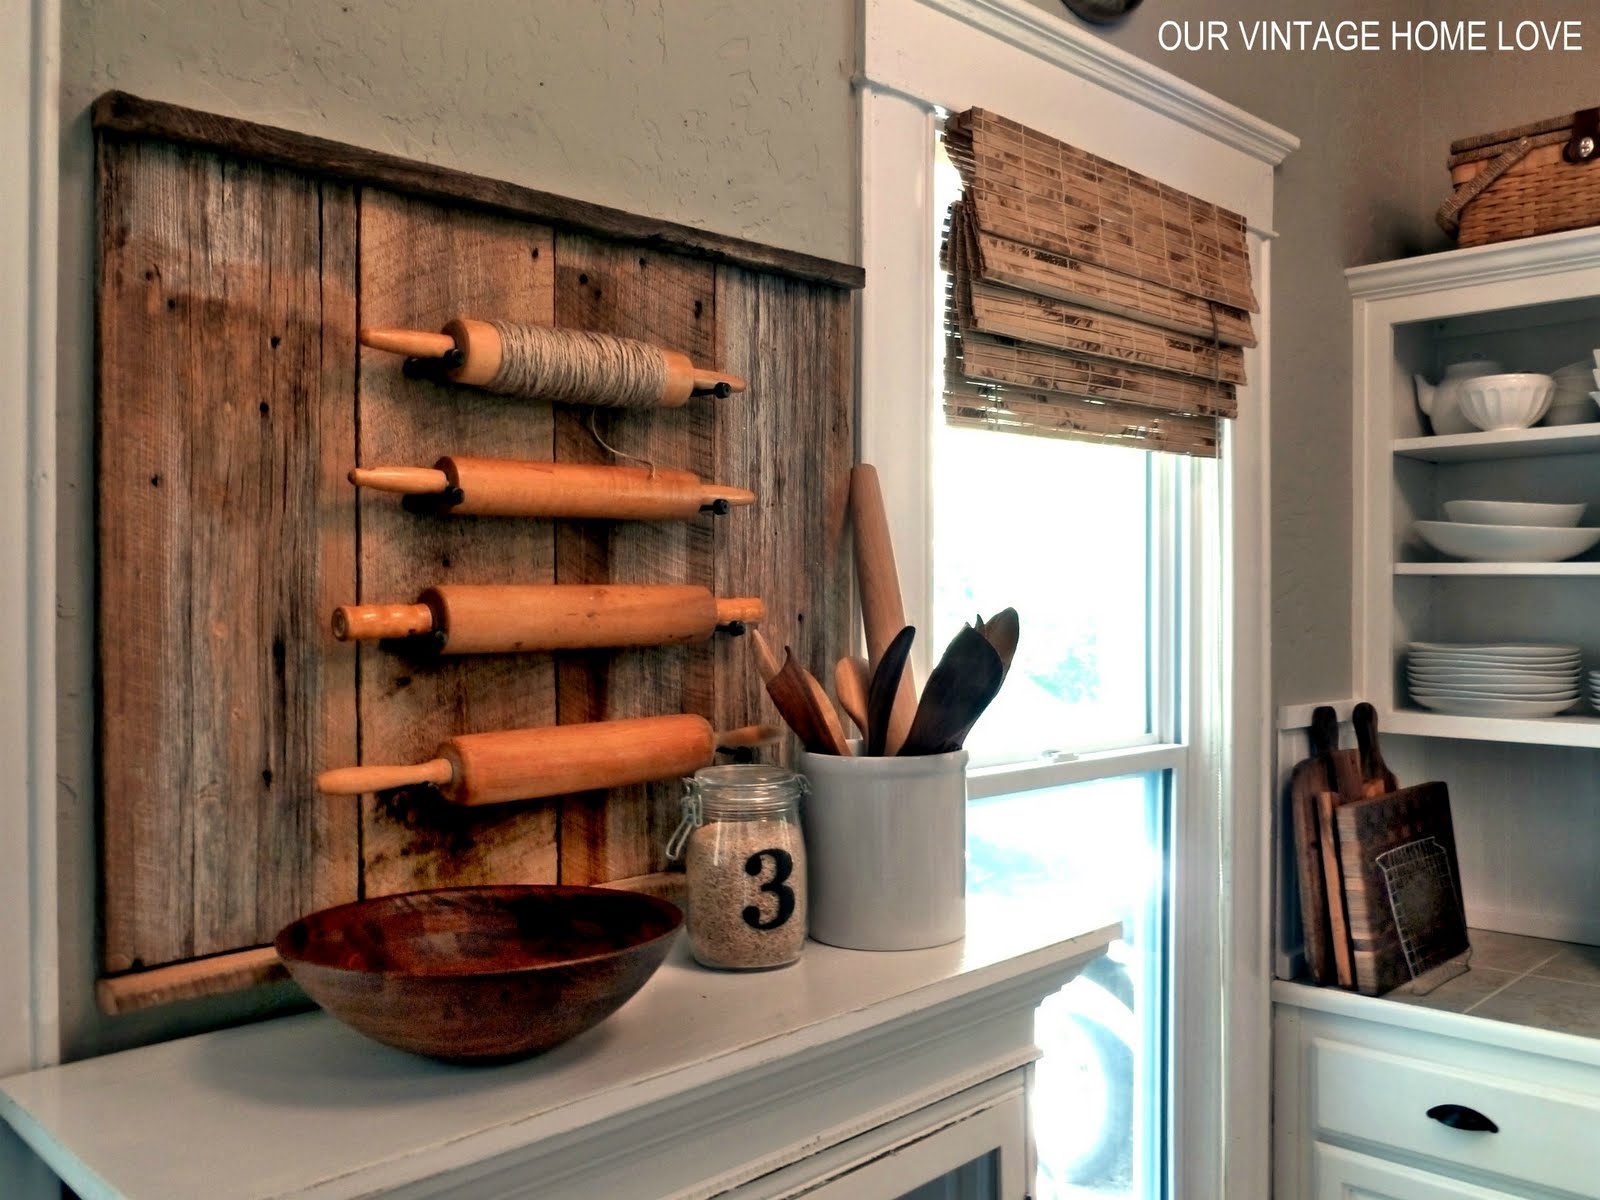 vintage home love Rolling Pins